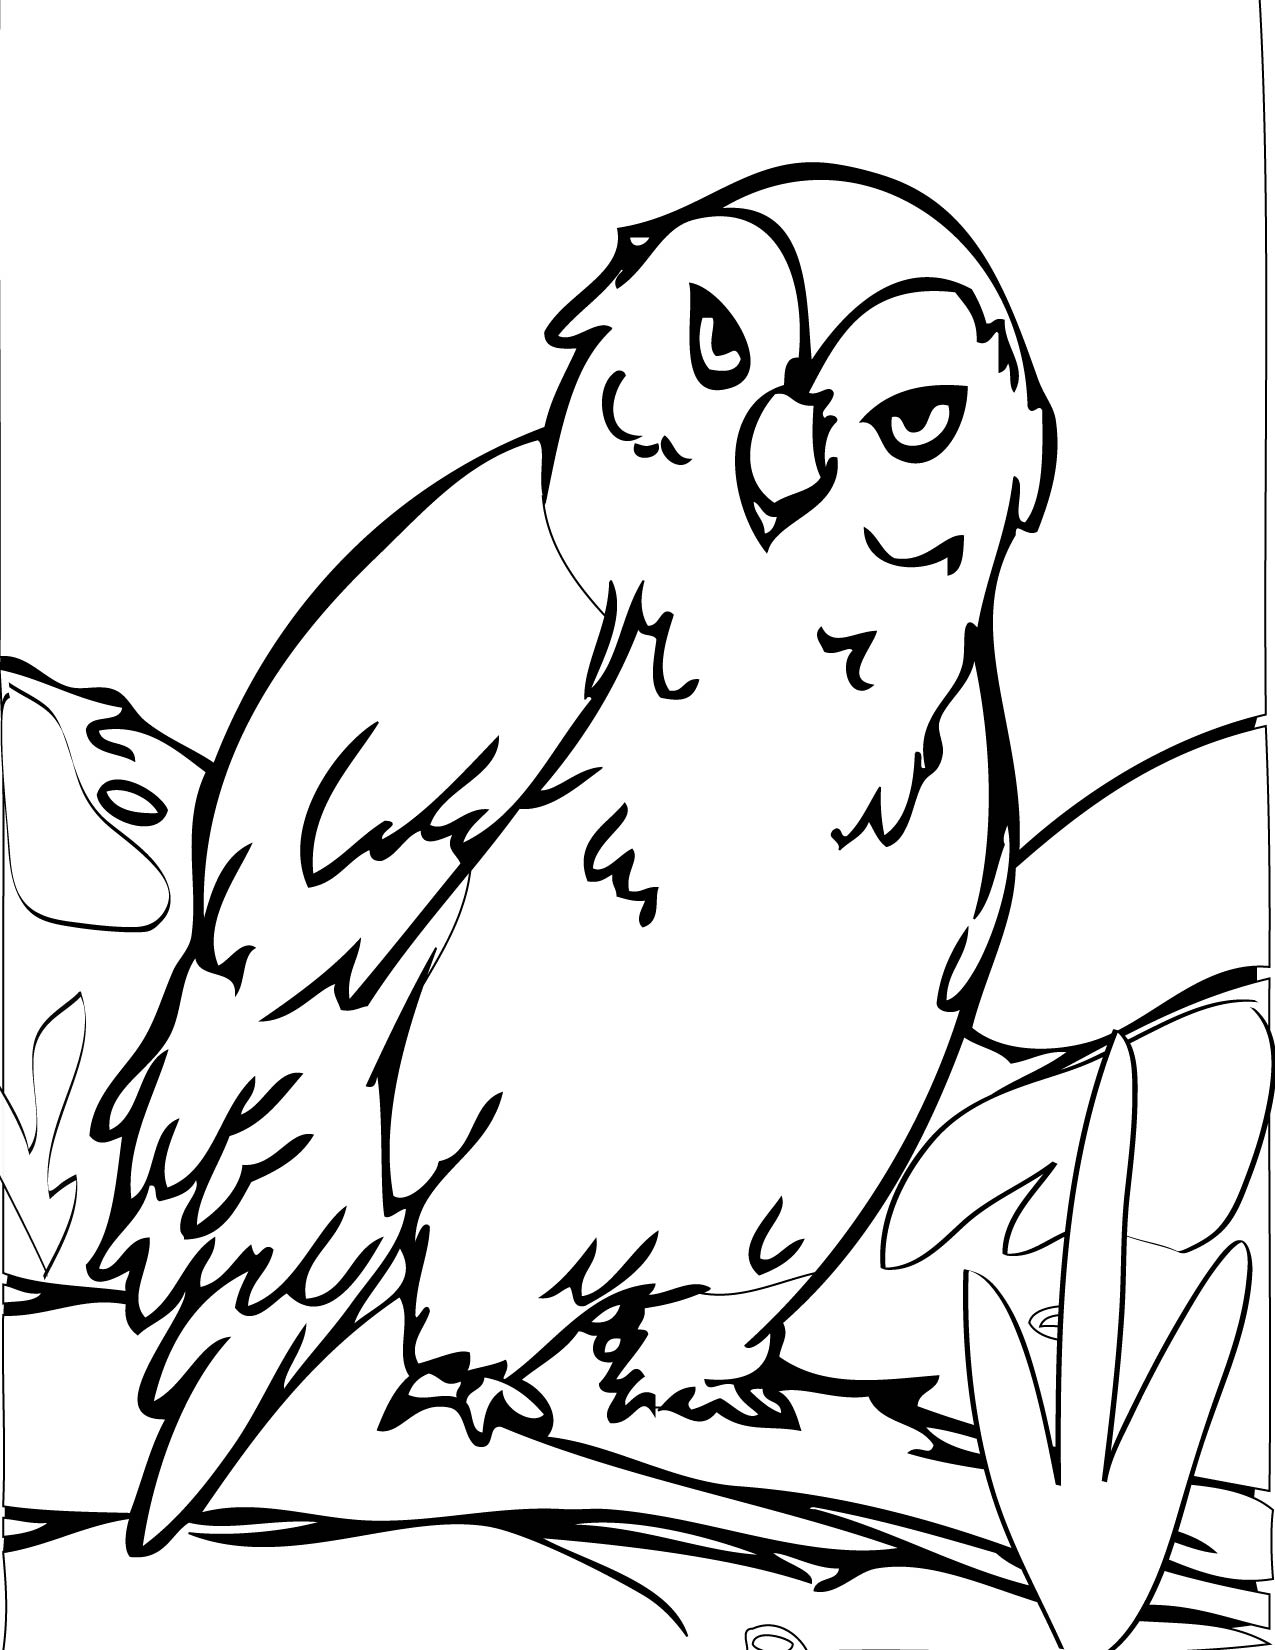 Easy Owl Coloring Pages at GetDrawings.com | Free for personal use ...